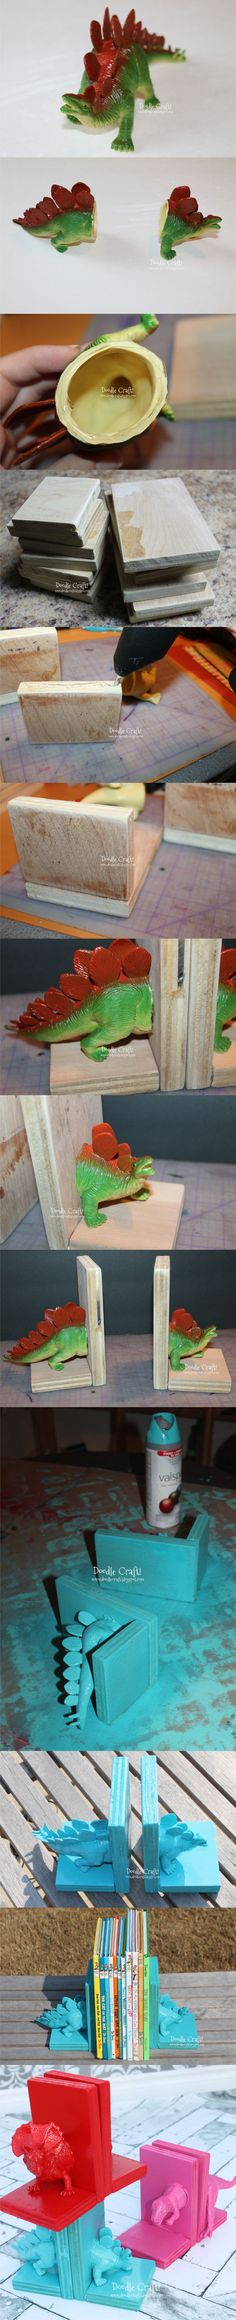 Ingenioso sujeta libros con dinosaurios / Via instructables y doodlecraft